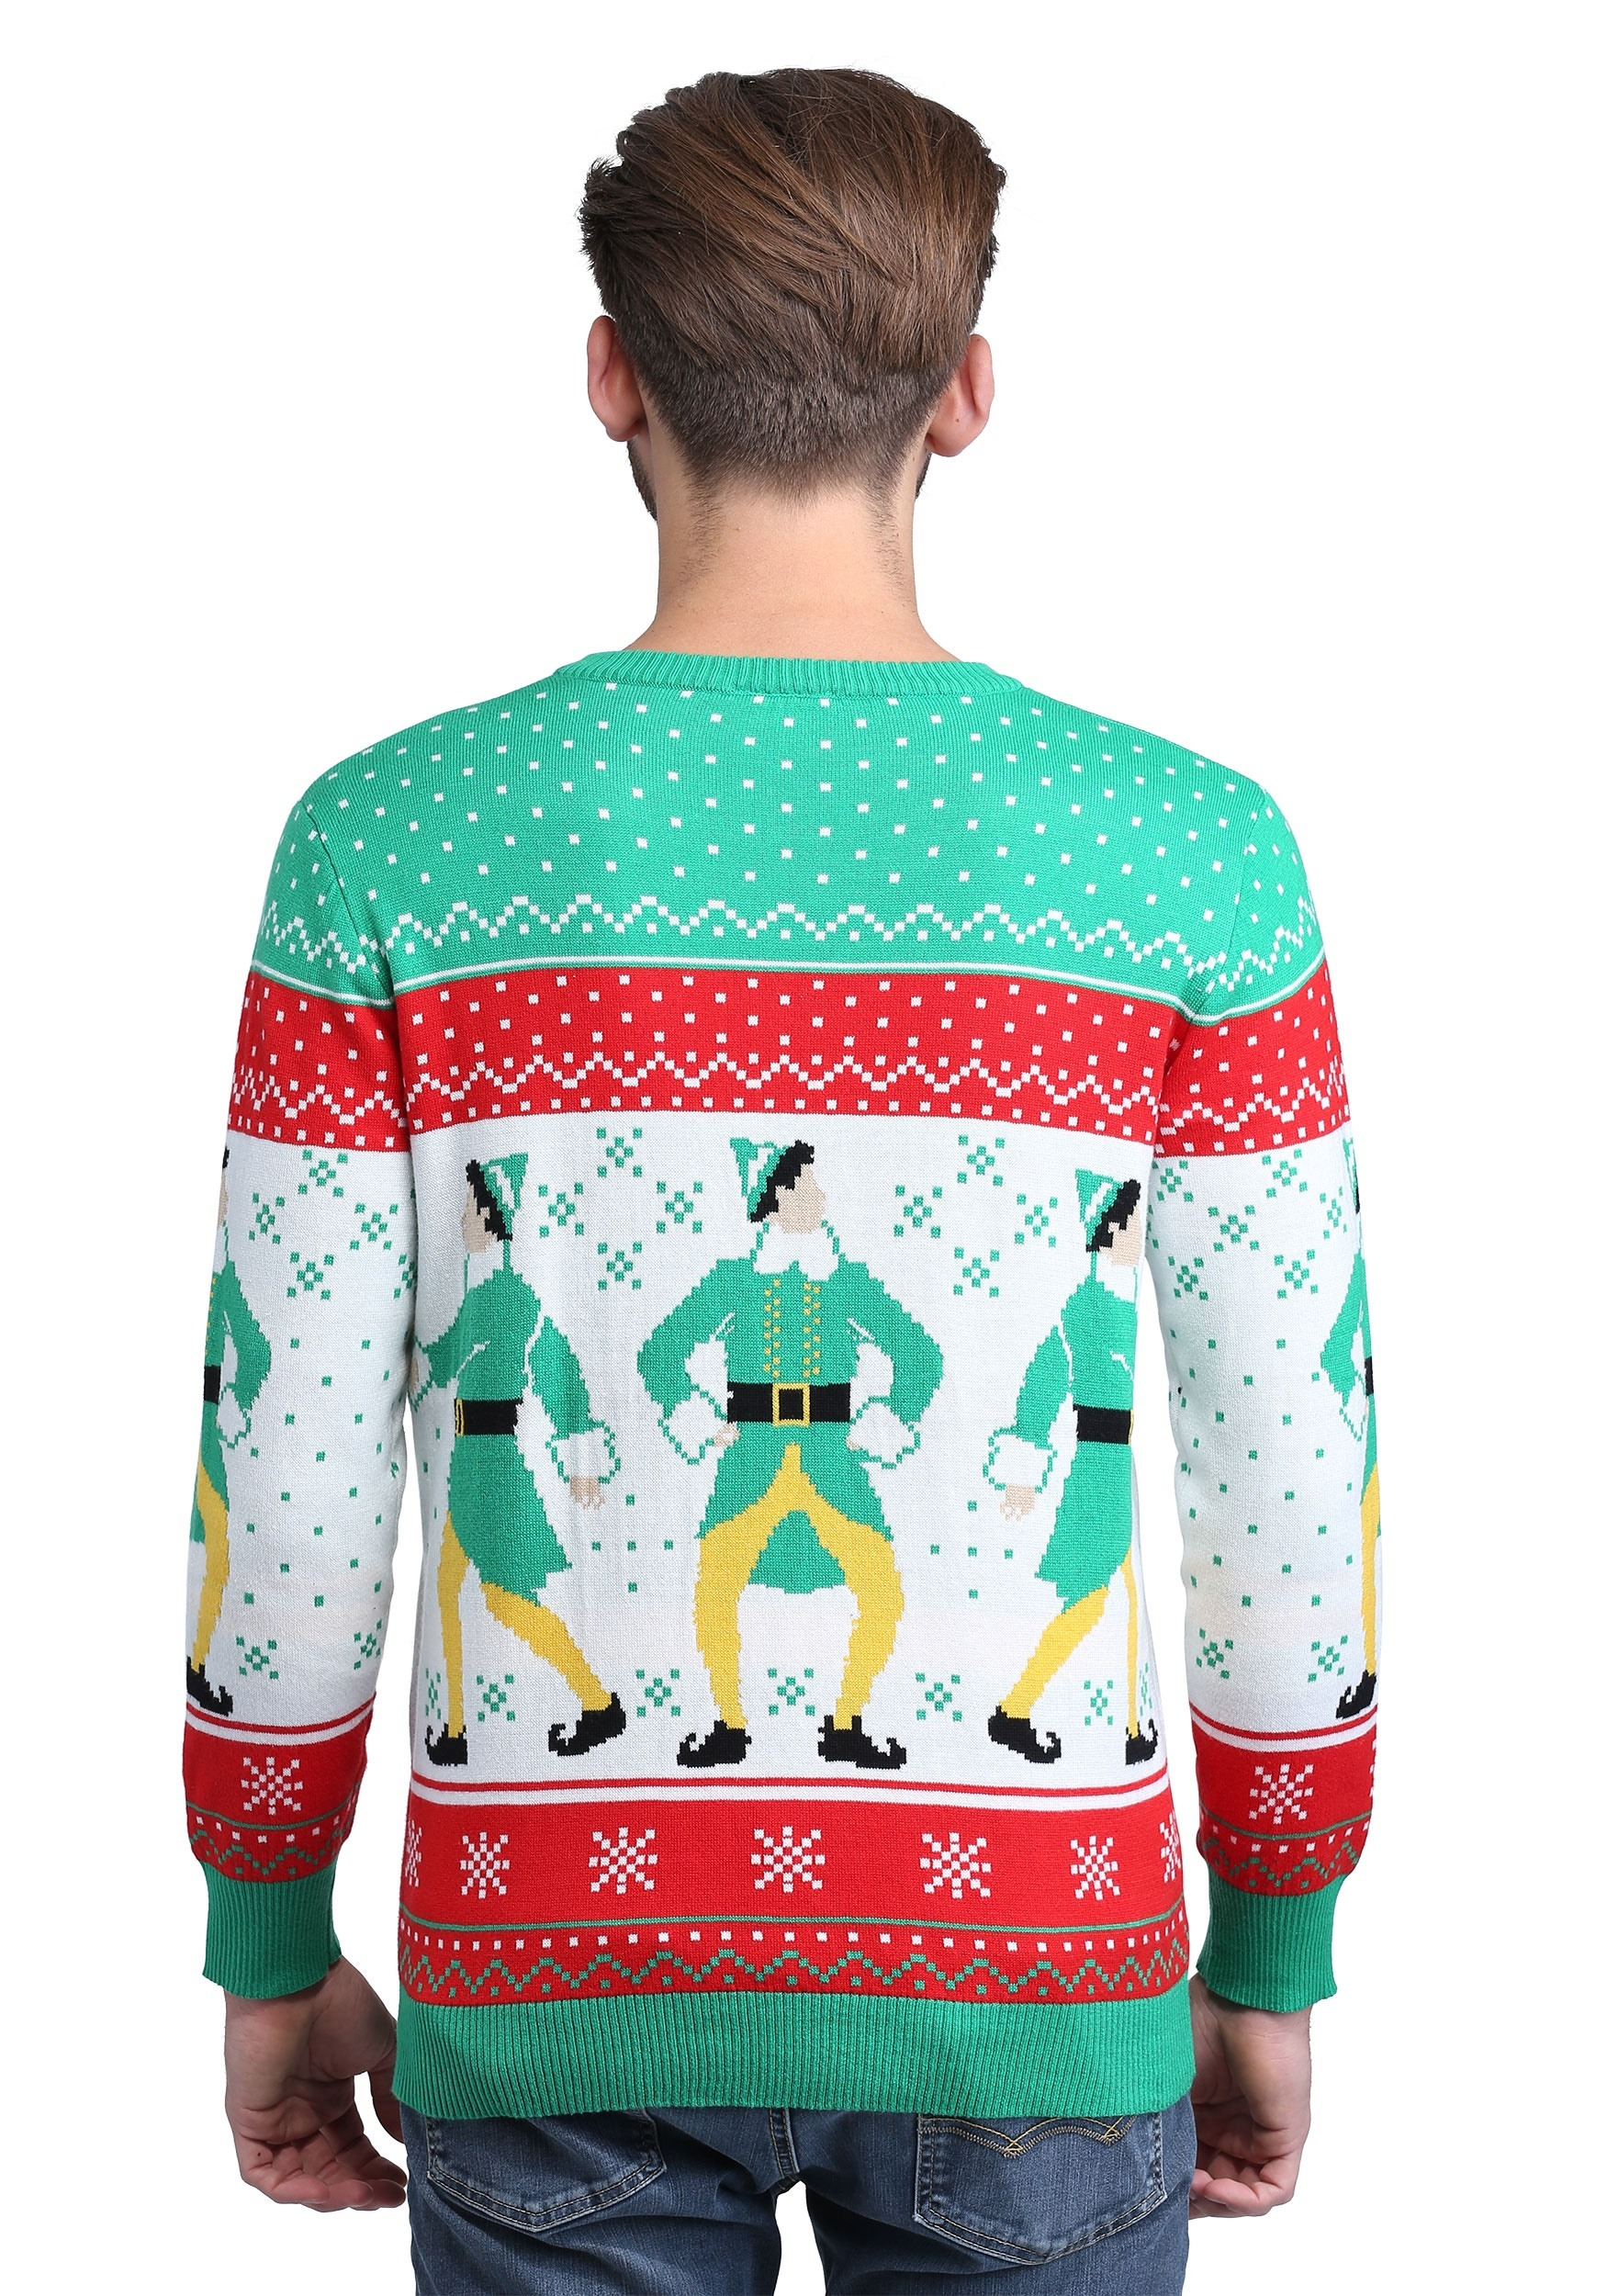 Buddy the Elf Ginormous Ugly Christmas Sweater for Adults